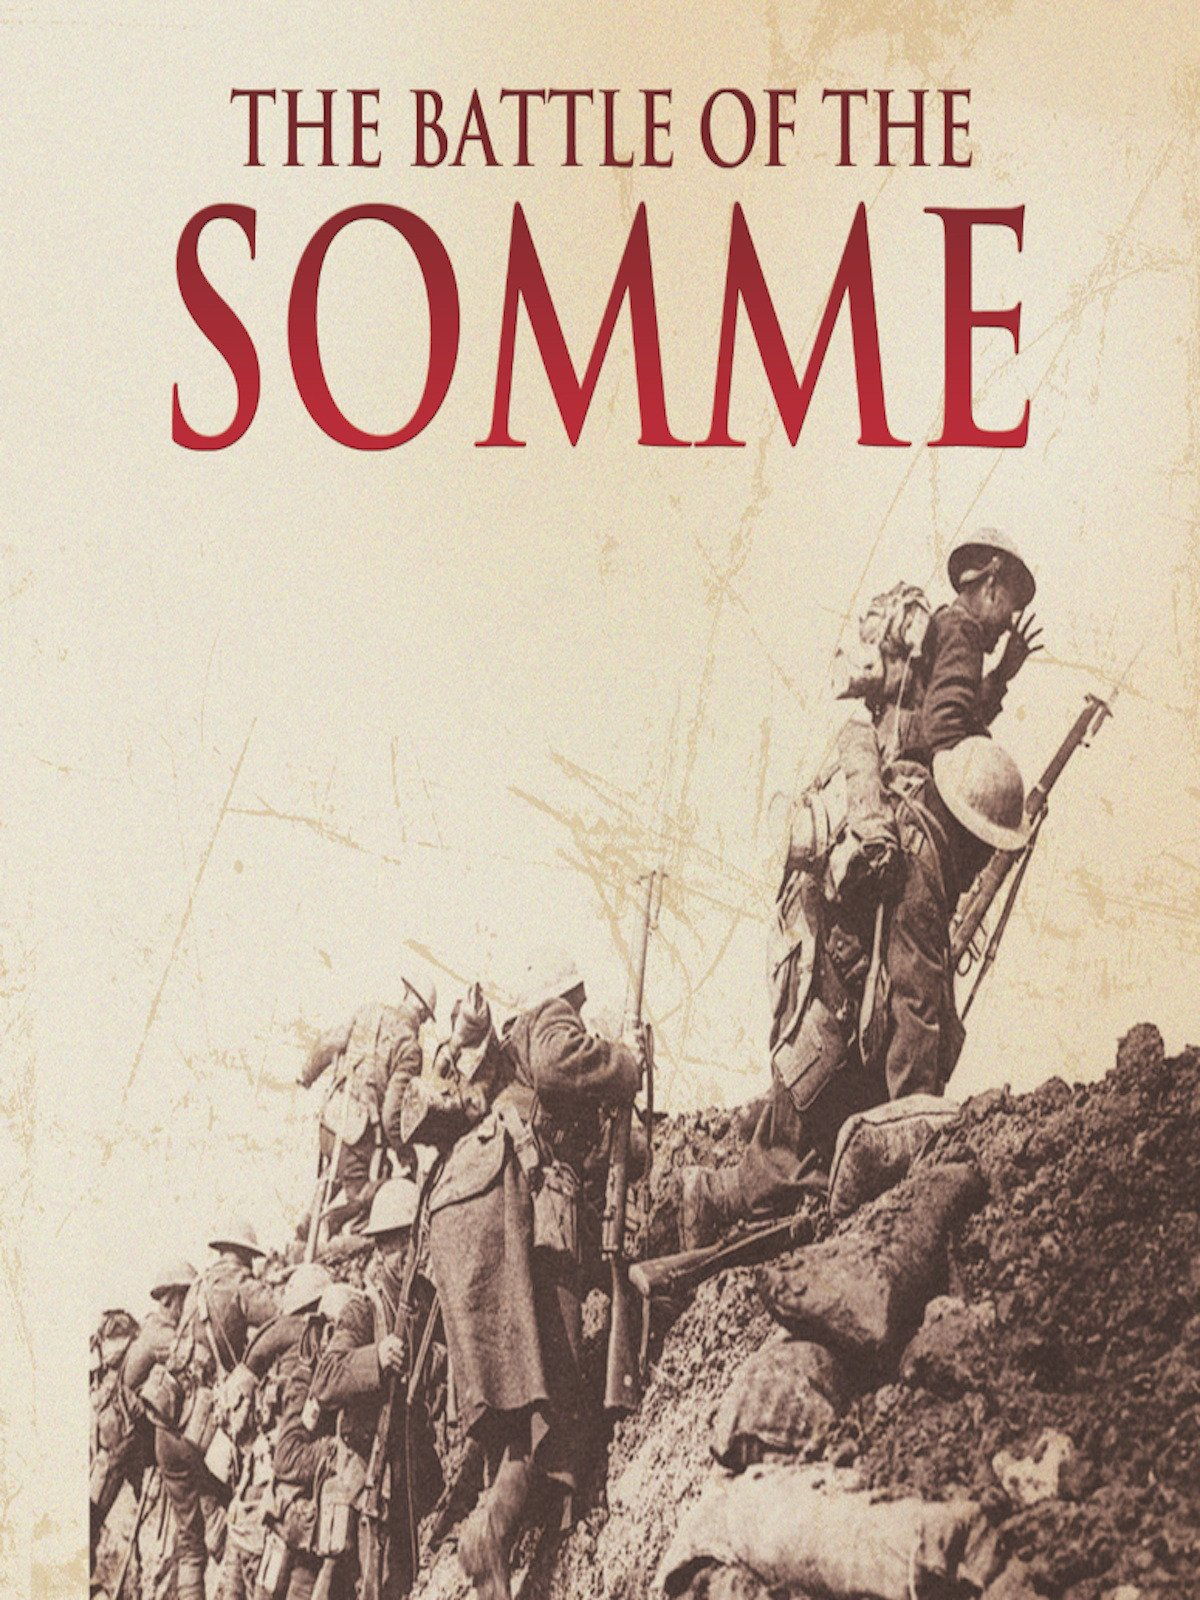 Battle of the Somme (No Dialogue)